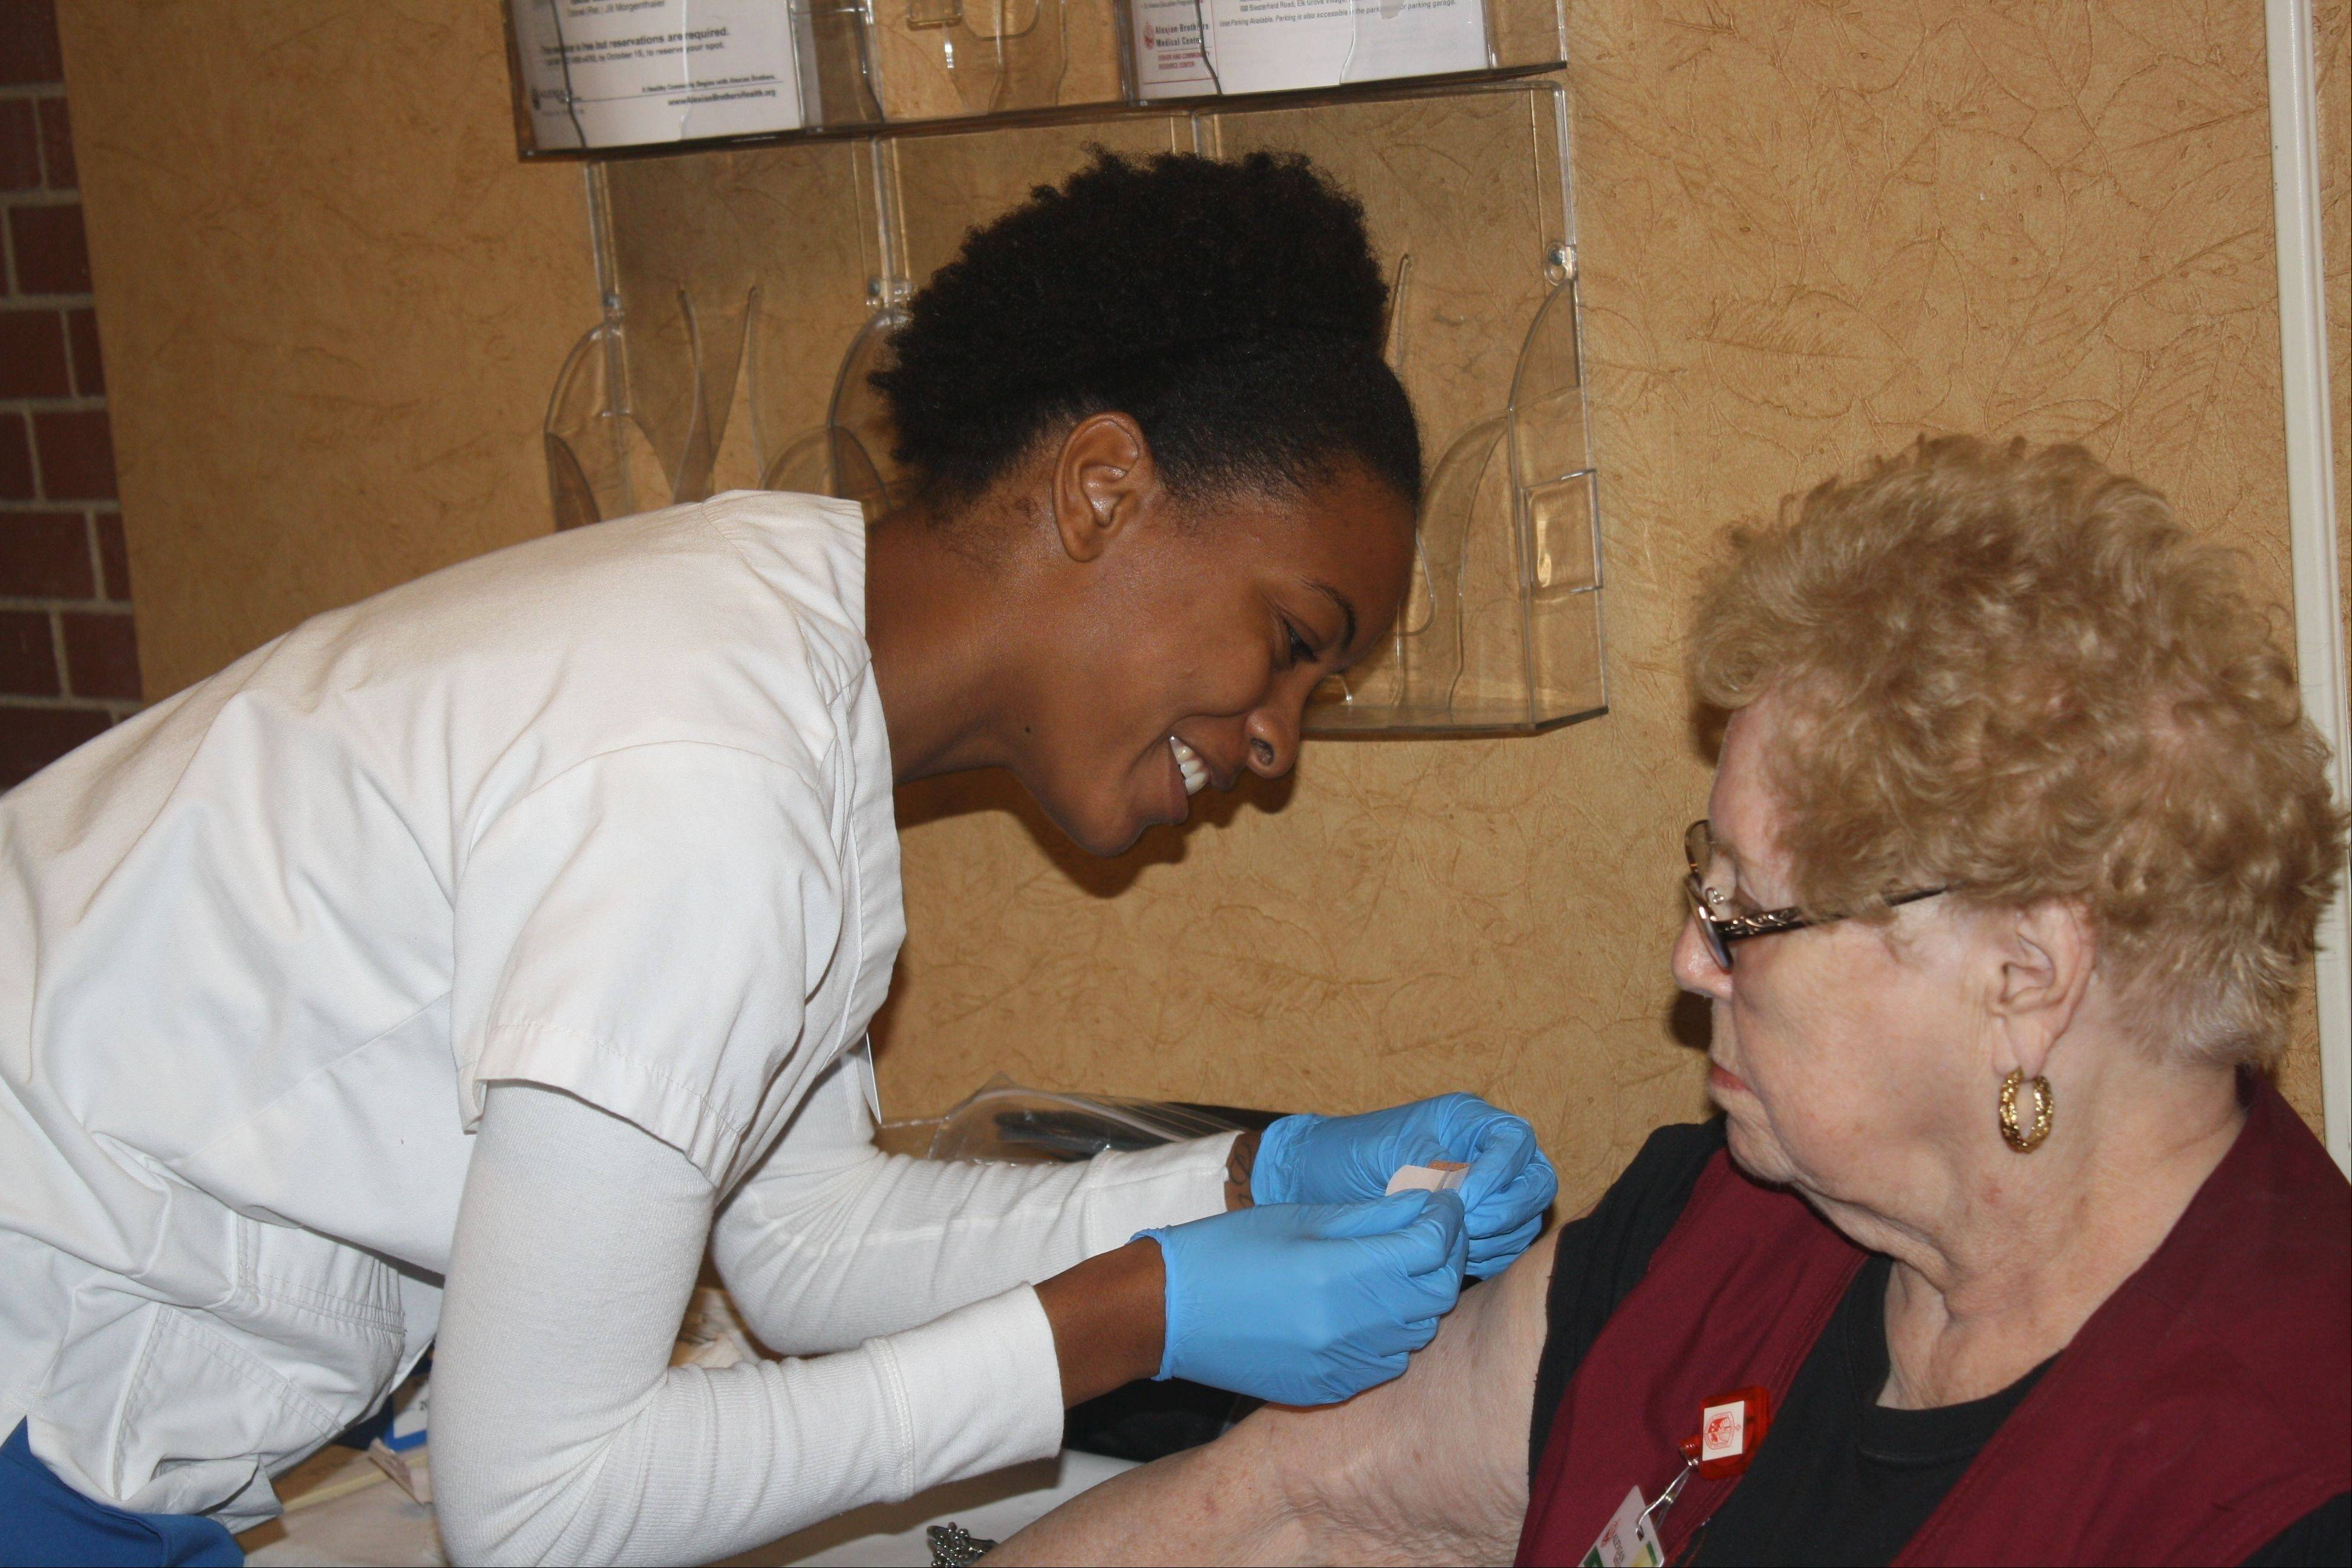 Harper College LPN student Tricia Williams administers a flu vaccine to a hospital volunteer at Alexian Brothers Medical Center.